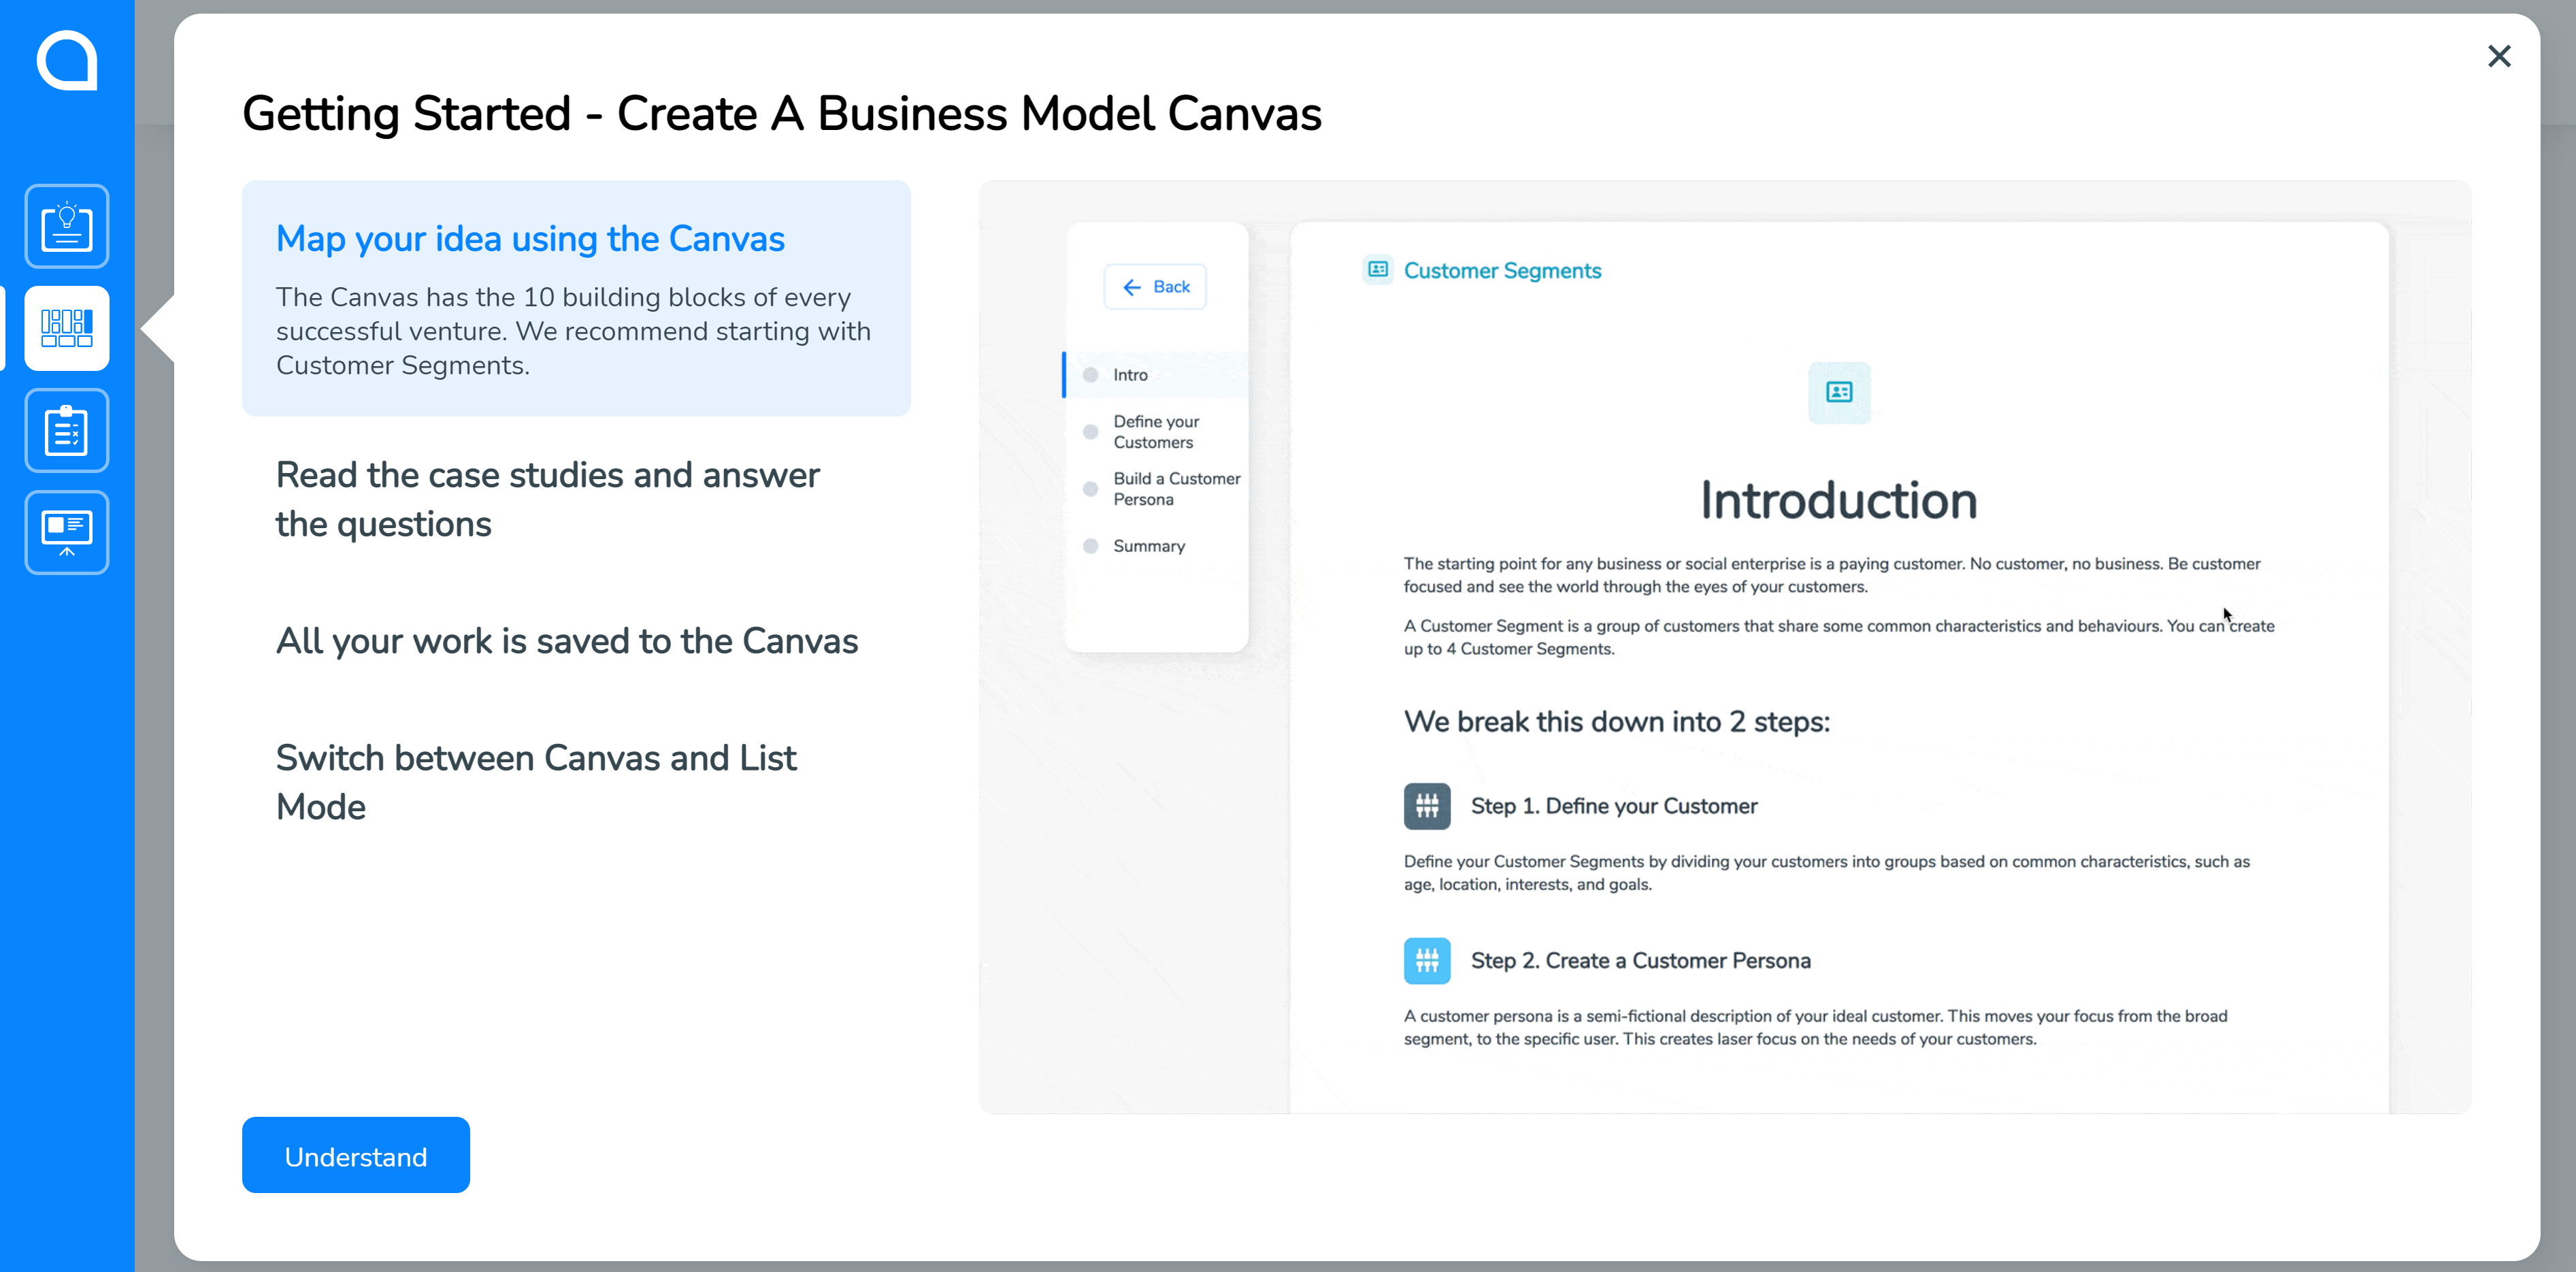 Start with Business Model Canvas in SimVenture Validate when you first log in.